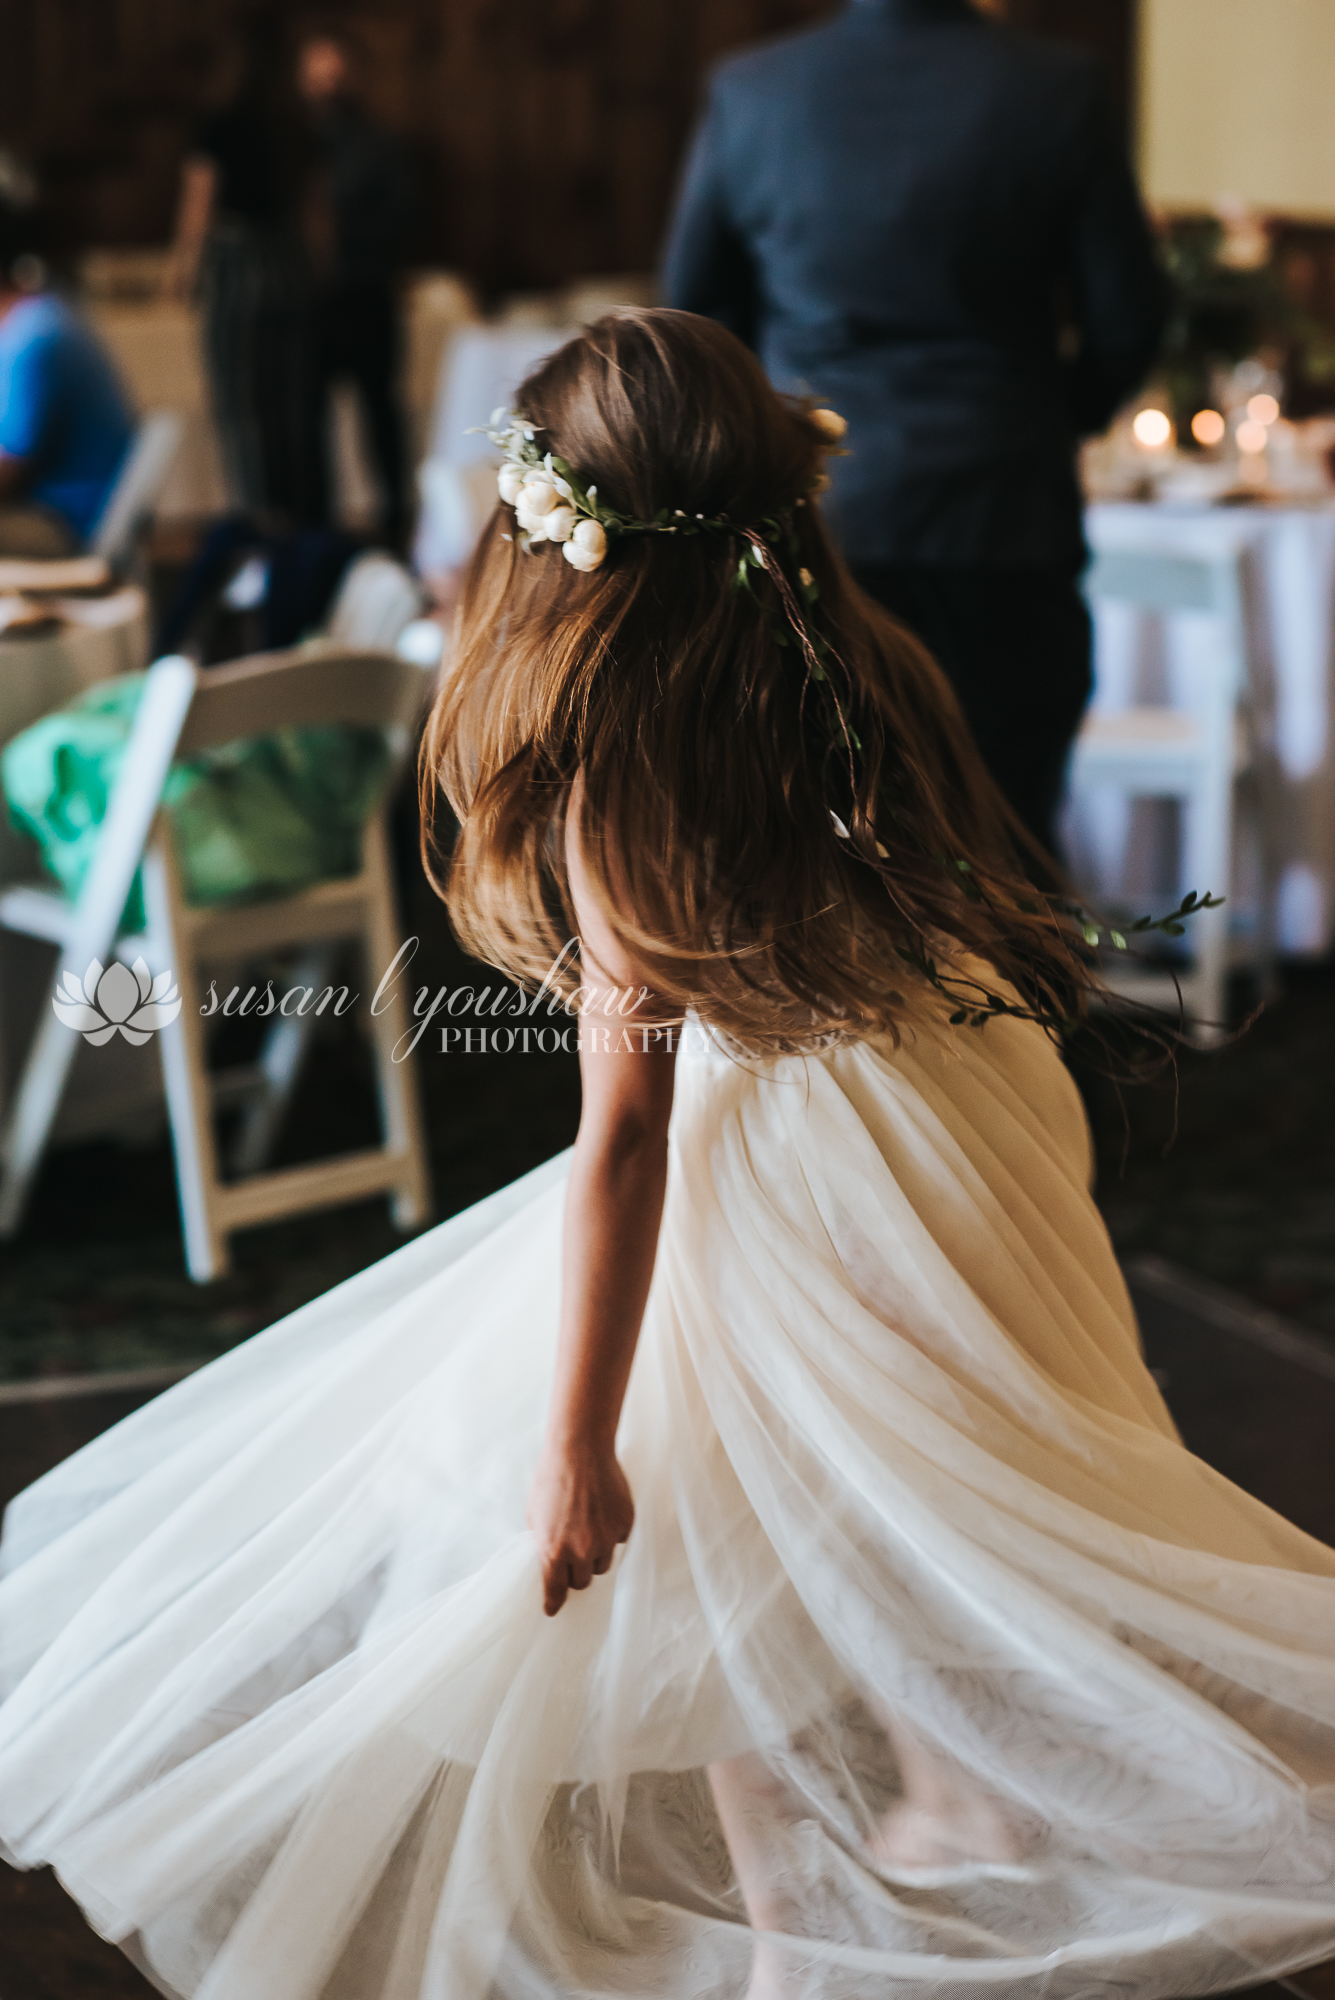 Chynna and John Wedding 05-18-2019 SLY Photography-112.jpg